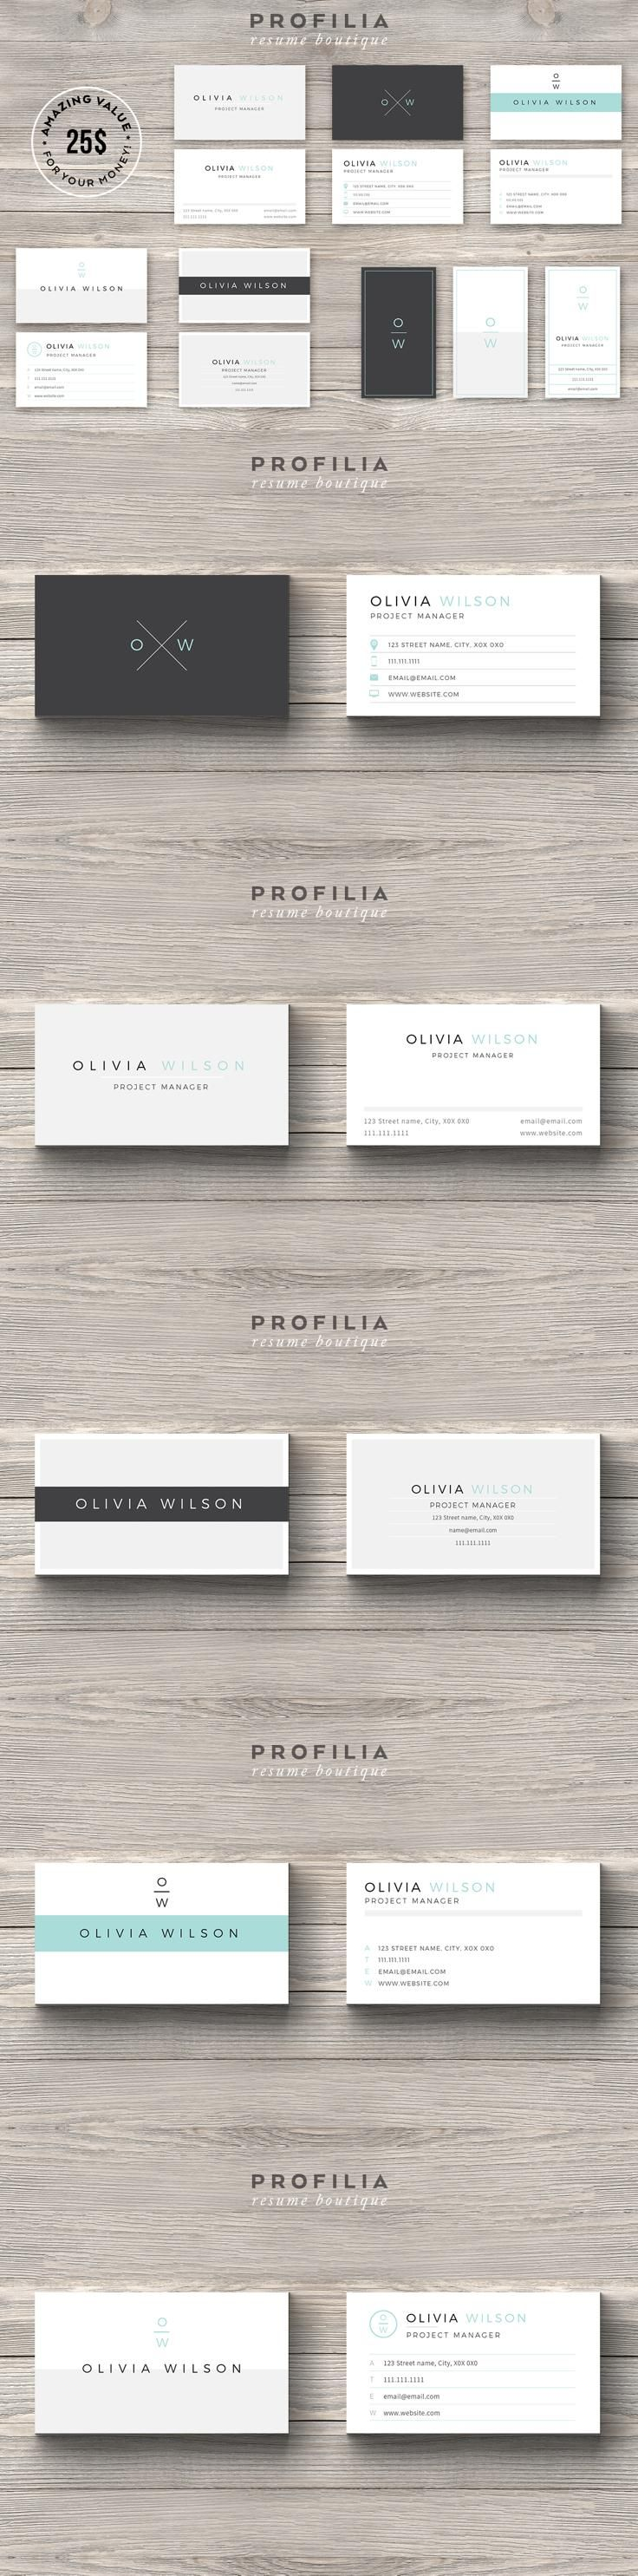 52 Best Clean Elegant Business Cards Images On Pinterest Elegant